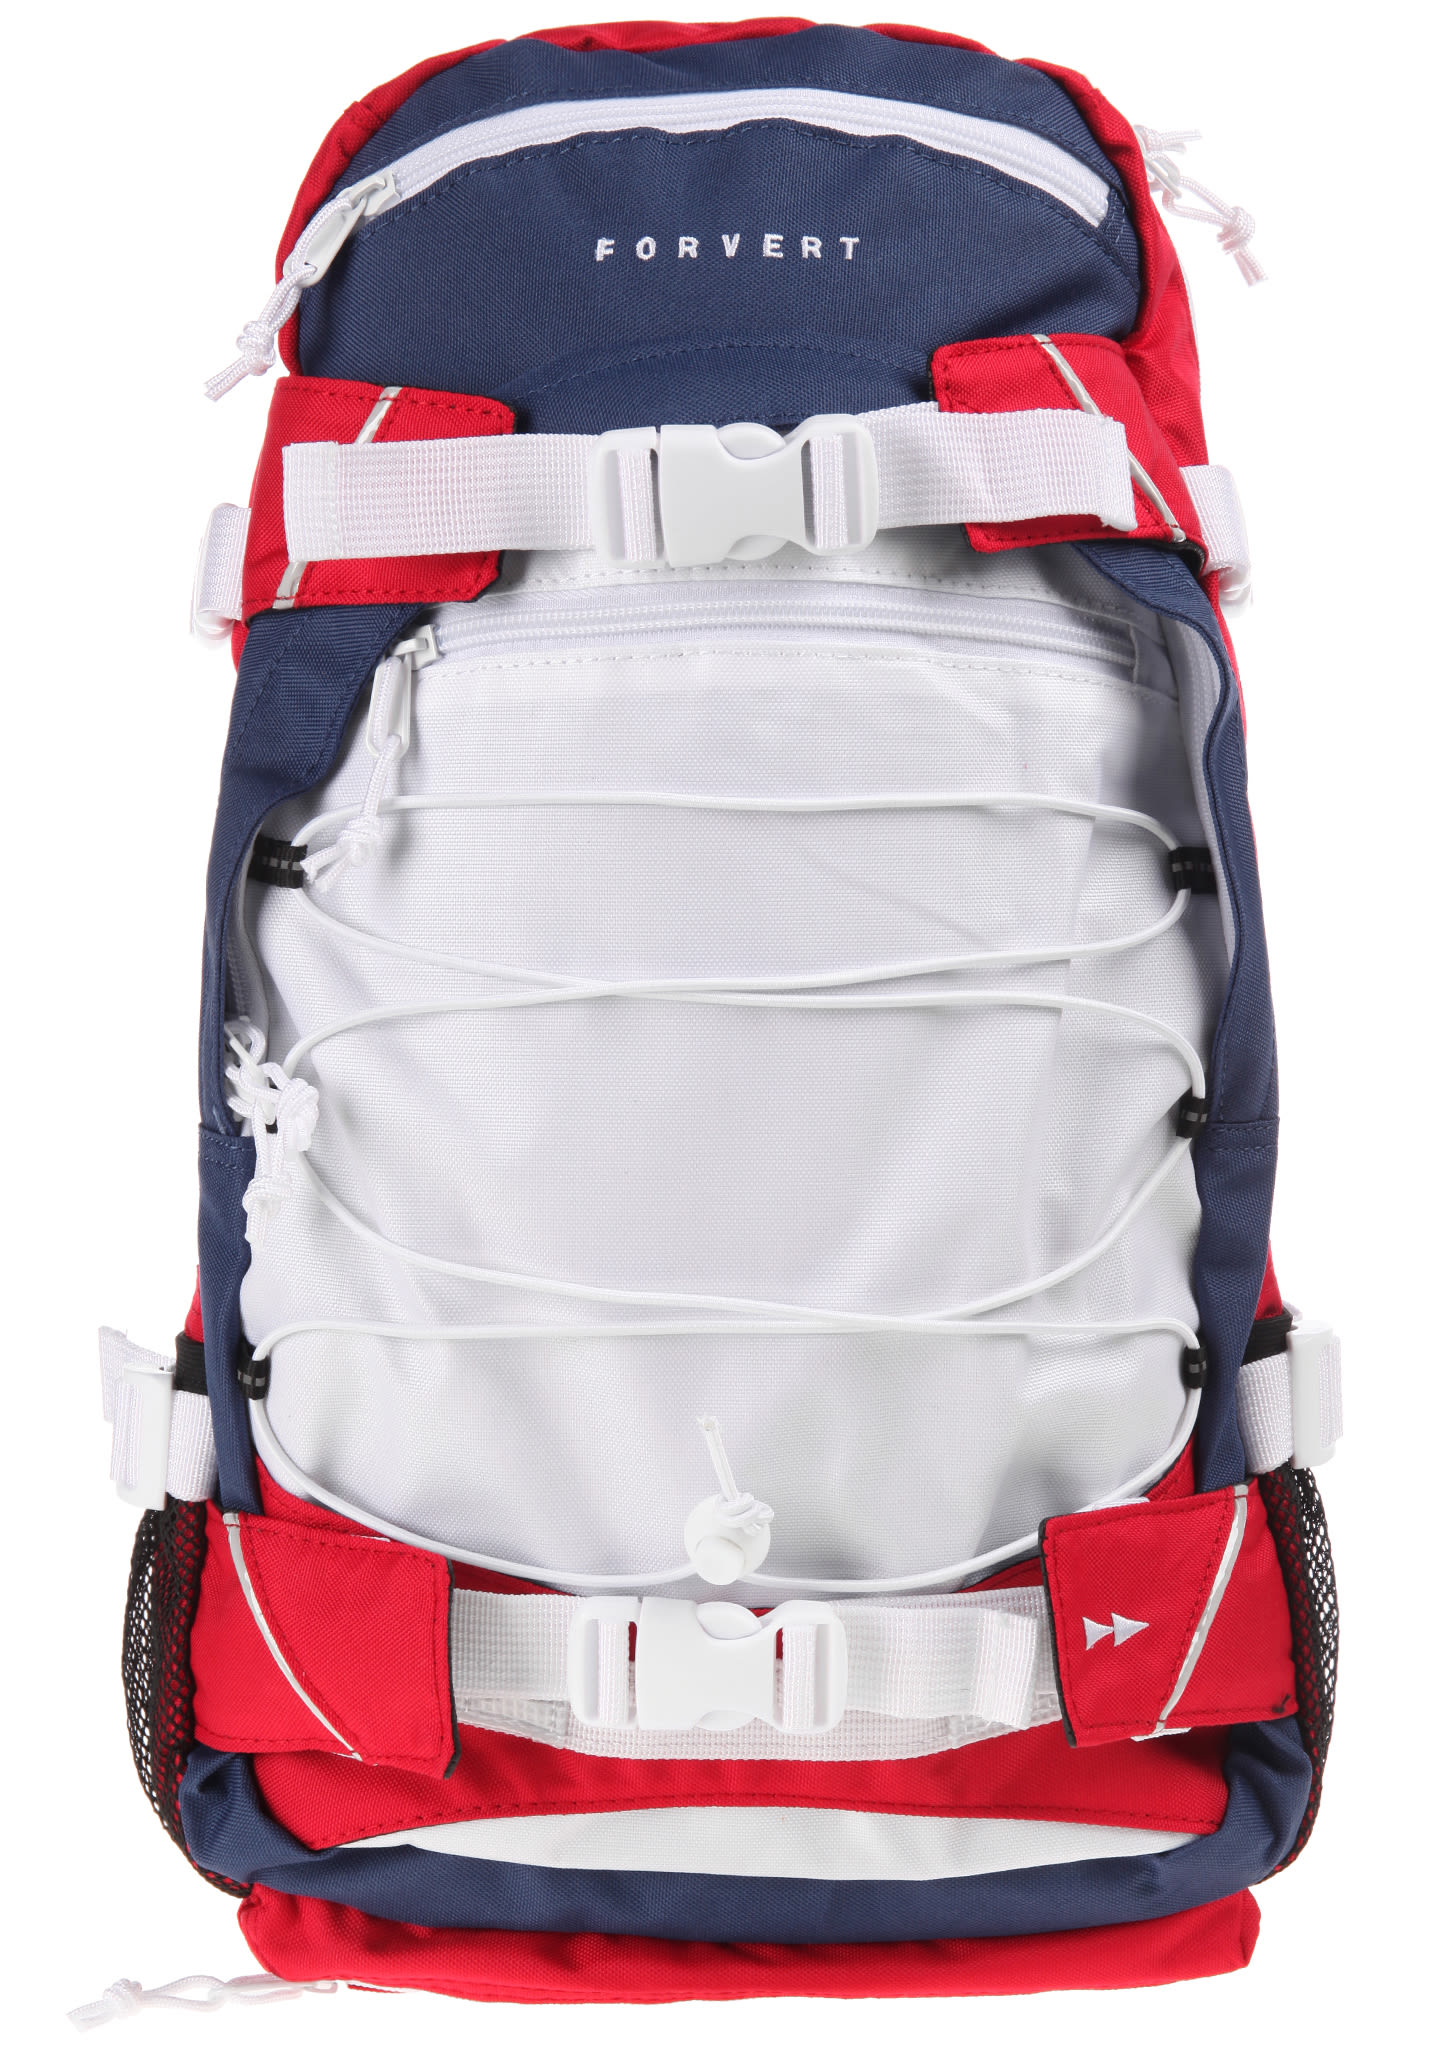 2d6f1116fc1e0 FORVERT Ice Louis 20L - Rucksack - Weiß - Planet Sports